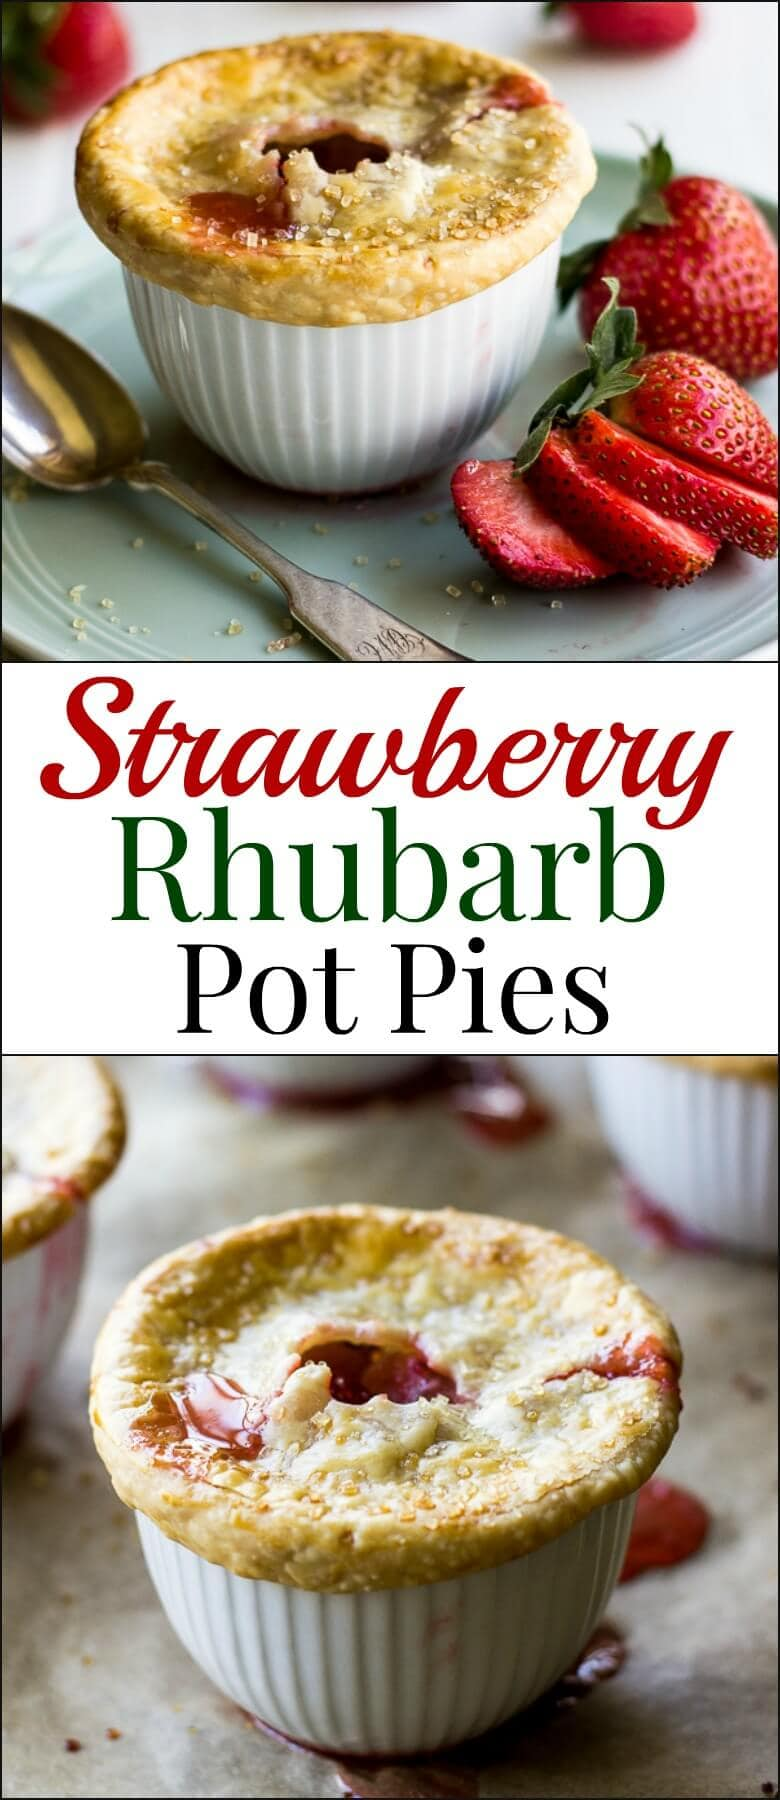 Strawberry Rhubarb Pot Pies